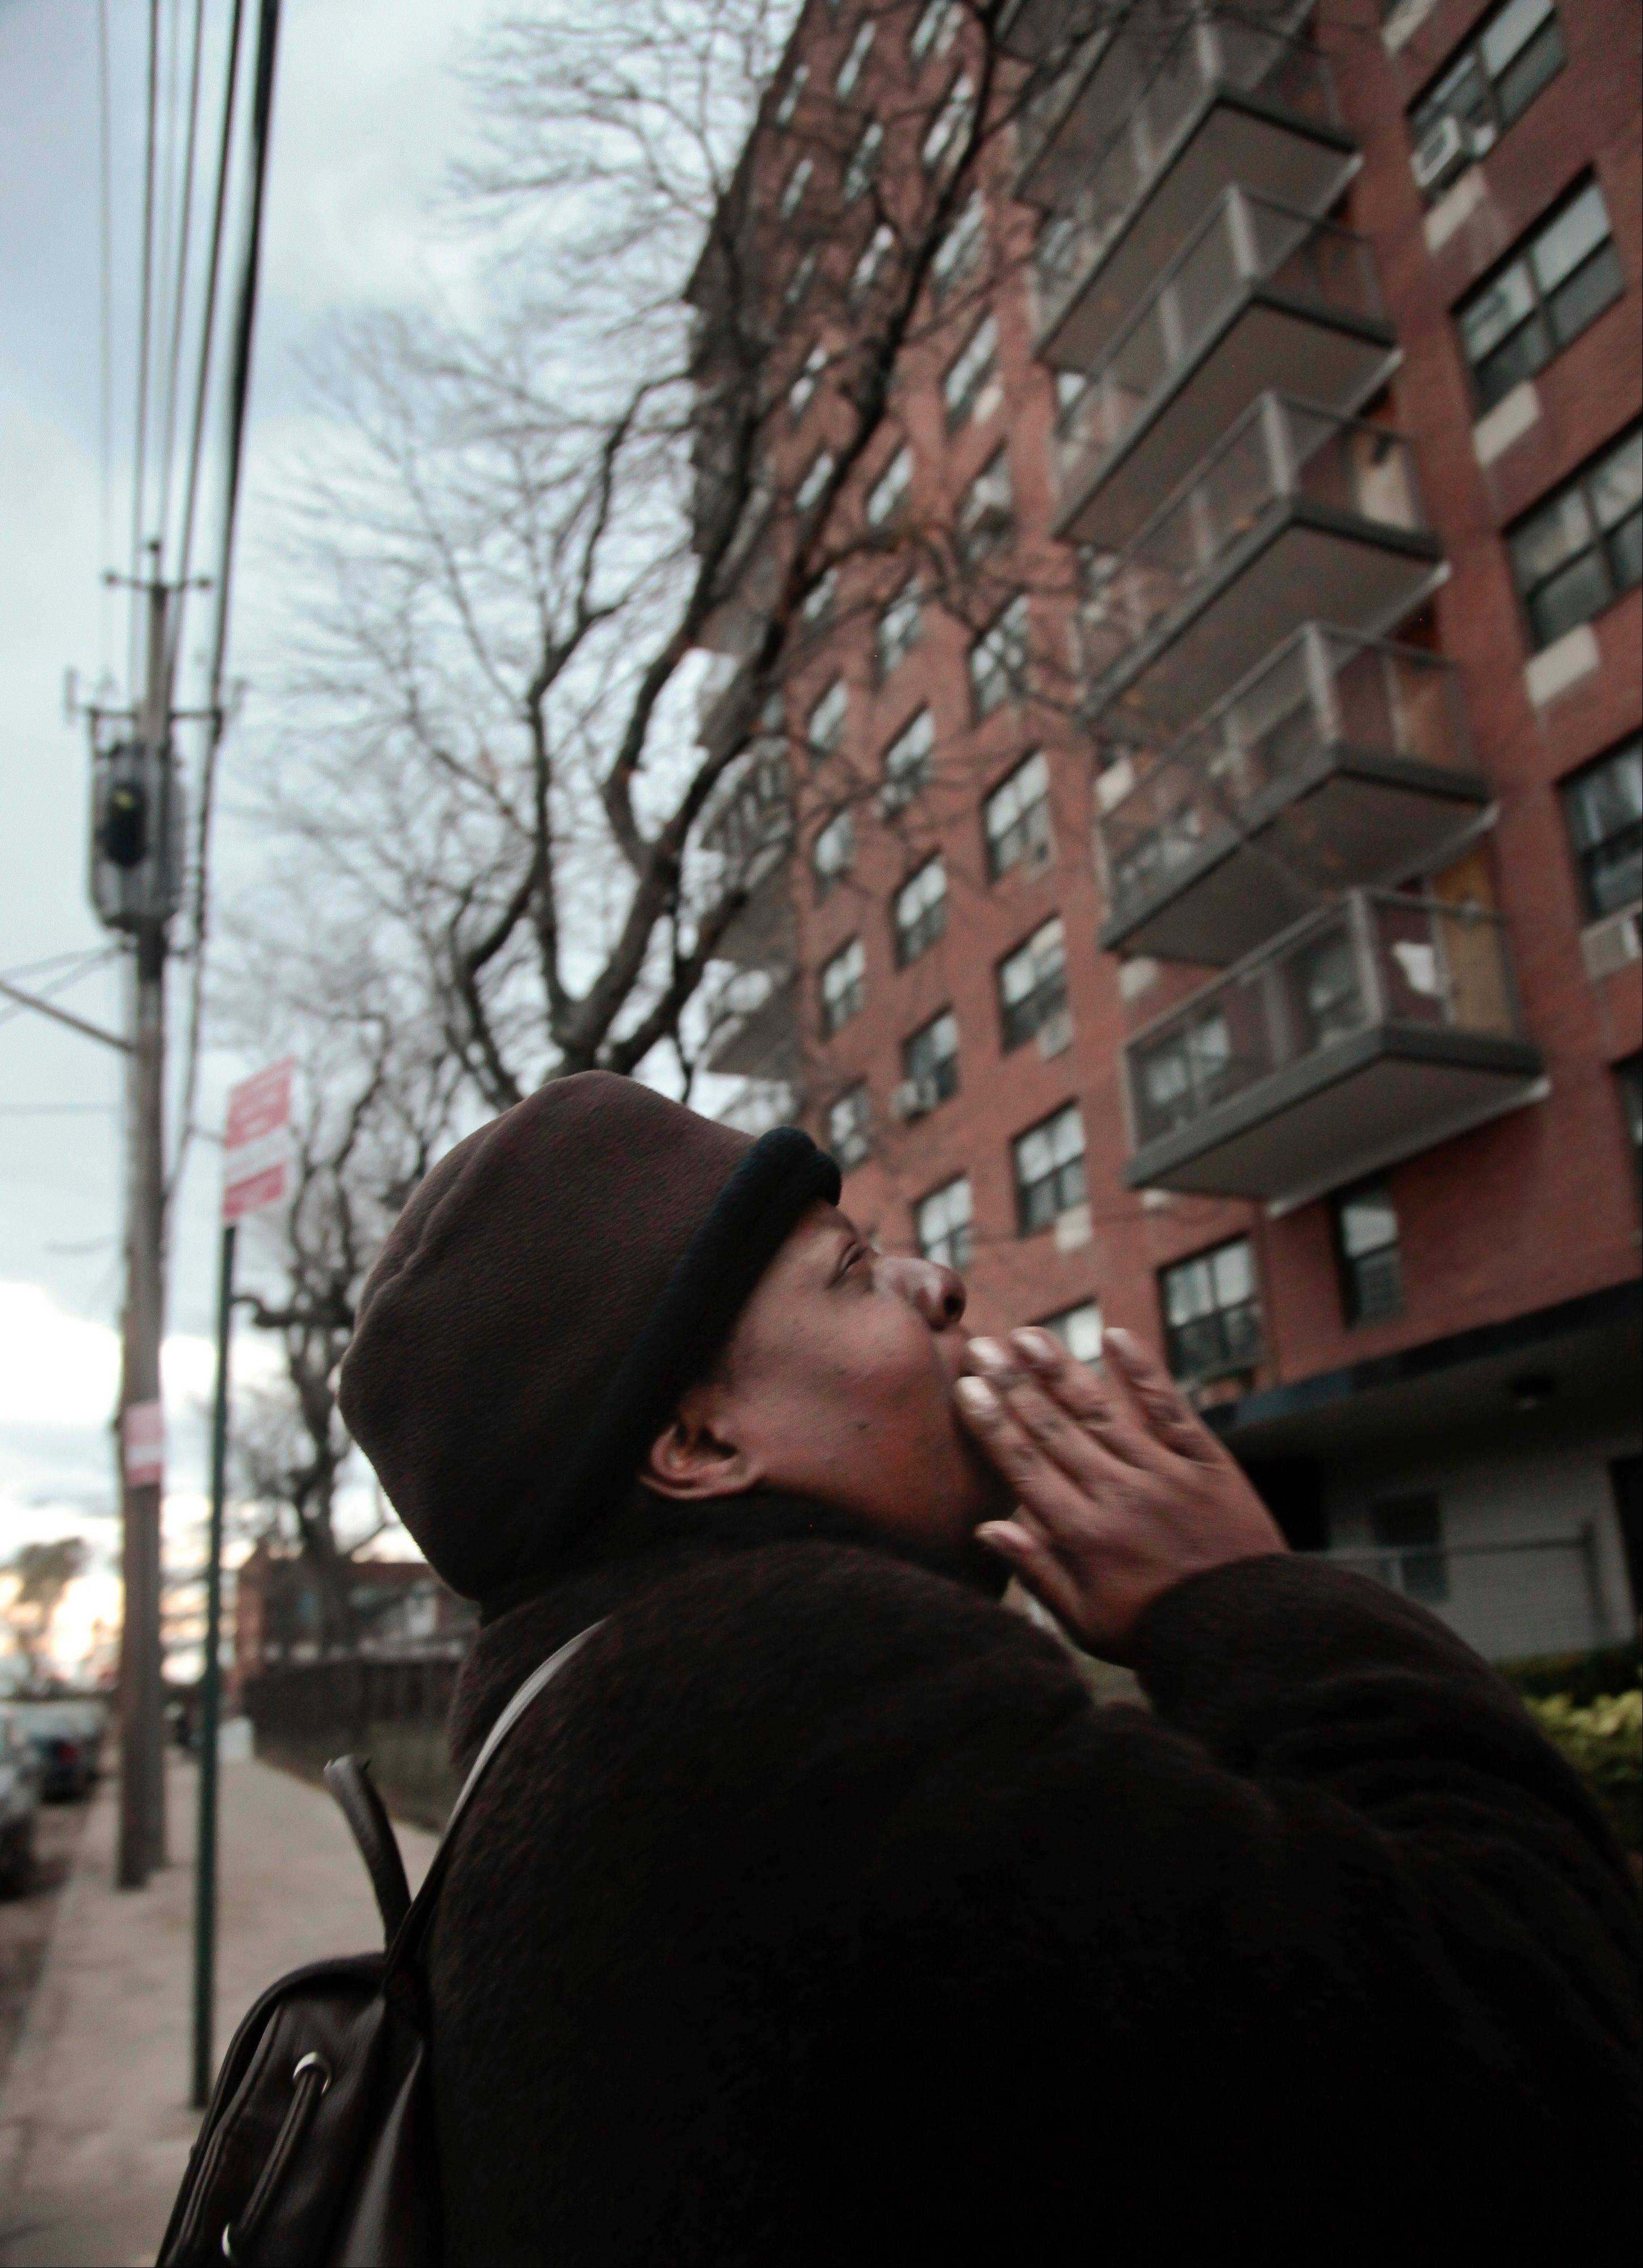 Roxanne Boothe stands outside the Sam Burt Houses, where she is president of the tenants association, and shouts that �we have hot food� to alert residents of a donation of food on Saturday in Coney Island, N.Y. The complex, which has been without power since Monday, flooded during superstorm Sandy. �We have no heat, no water, no electricity, it�s dark in the whole building,� said Boothe.